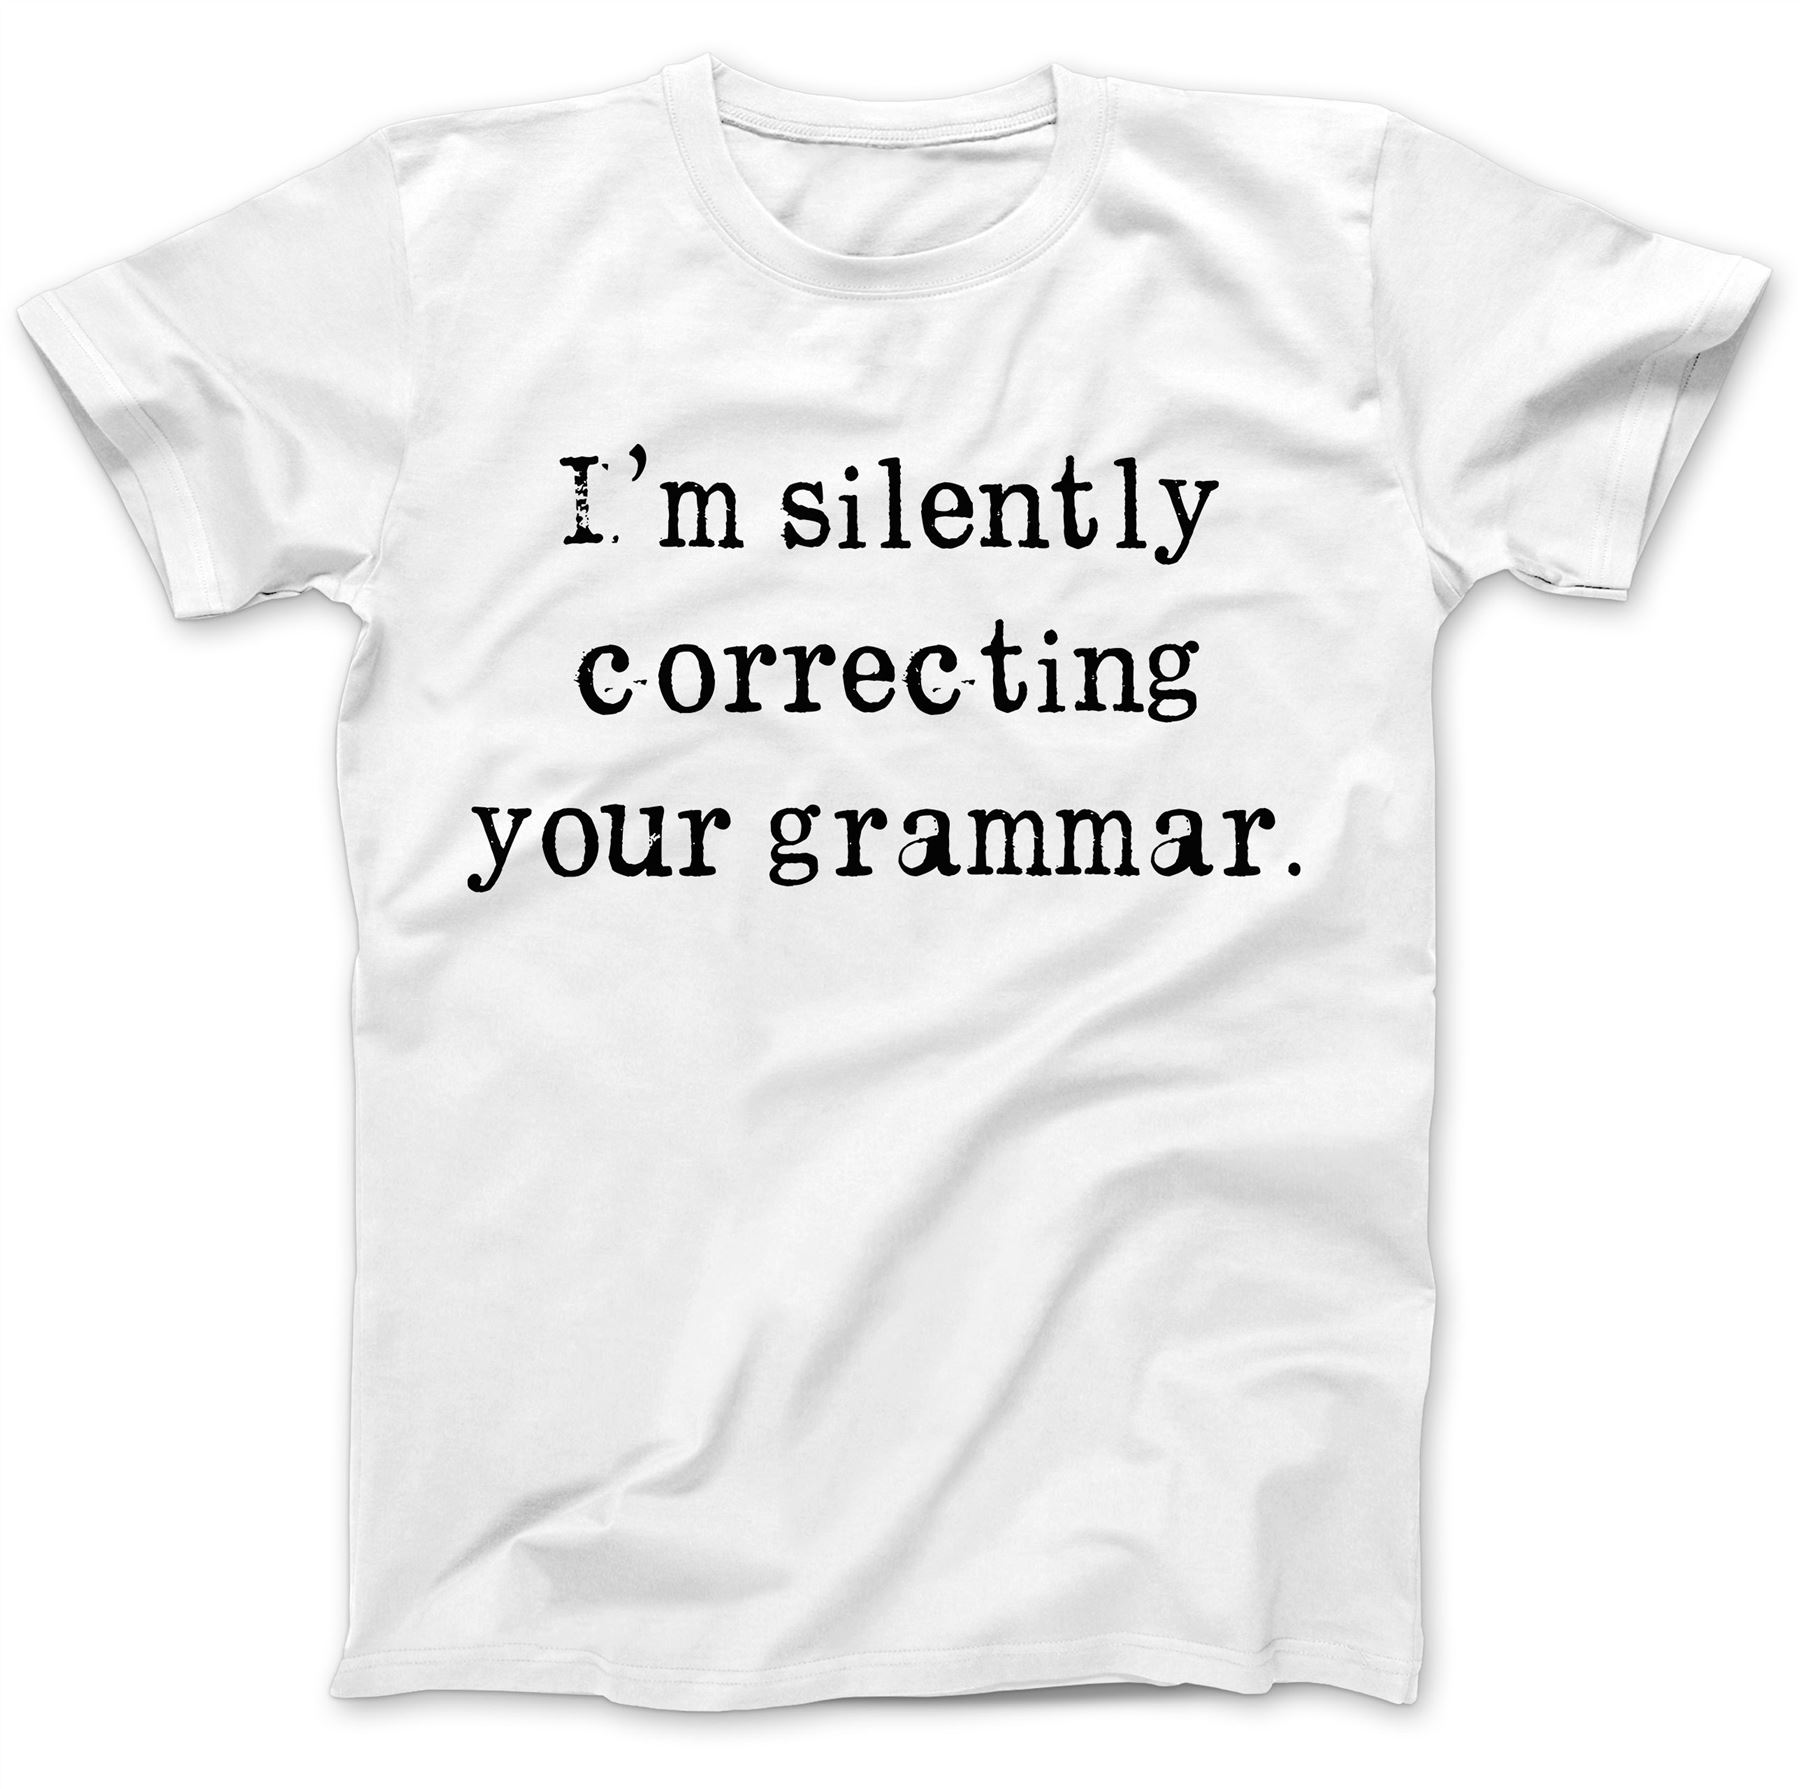 c4e41d50 Silently Correcting Your Grammar T-Shirt 100% Premium Cotton Funny ...